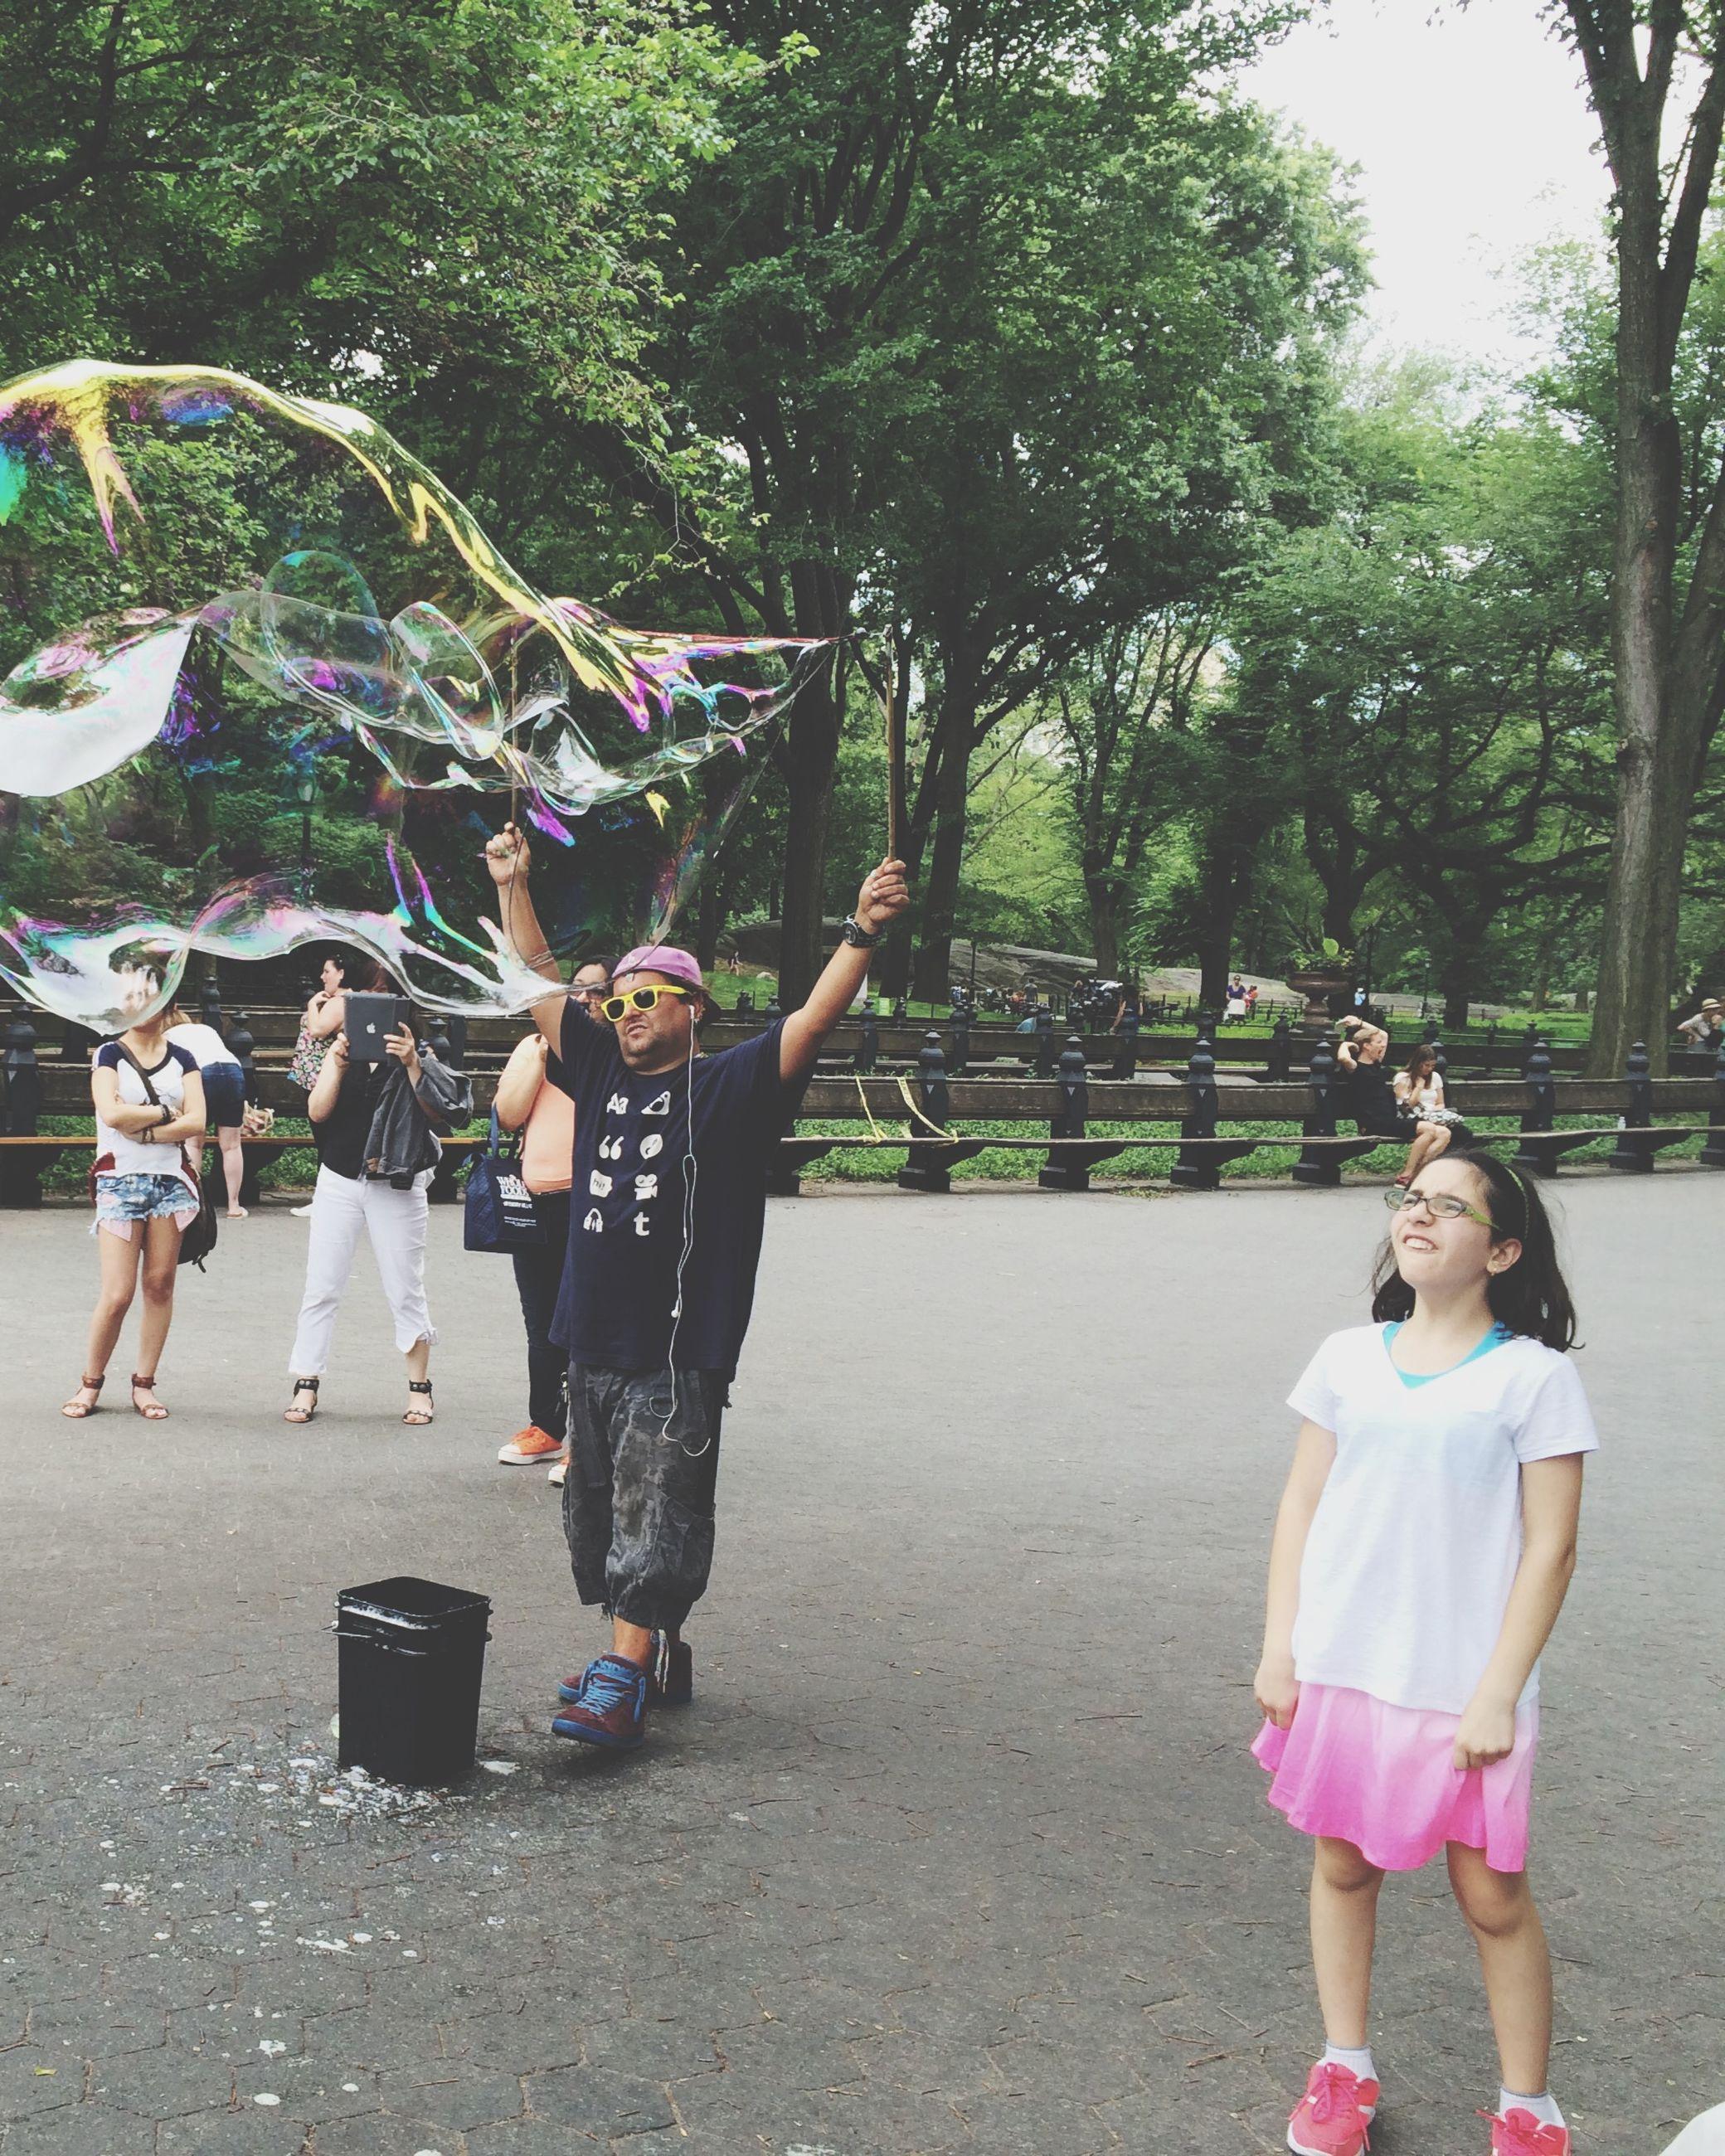 lifestyles, casual clothing, leisure activity, childhood, tree, full length, girls, elementary age, boys, person, park - man made space, enjoyment, fun, togetherness, day, playing, standing